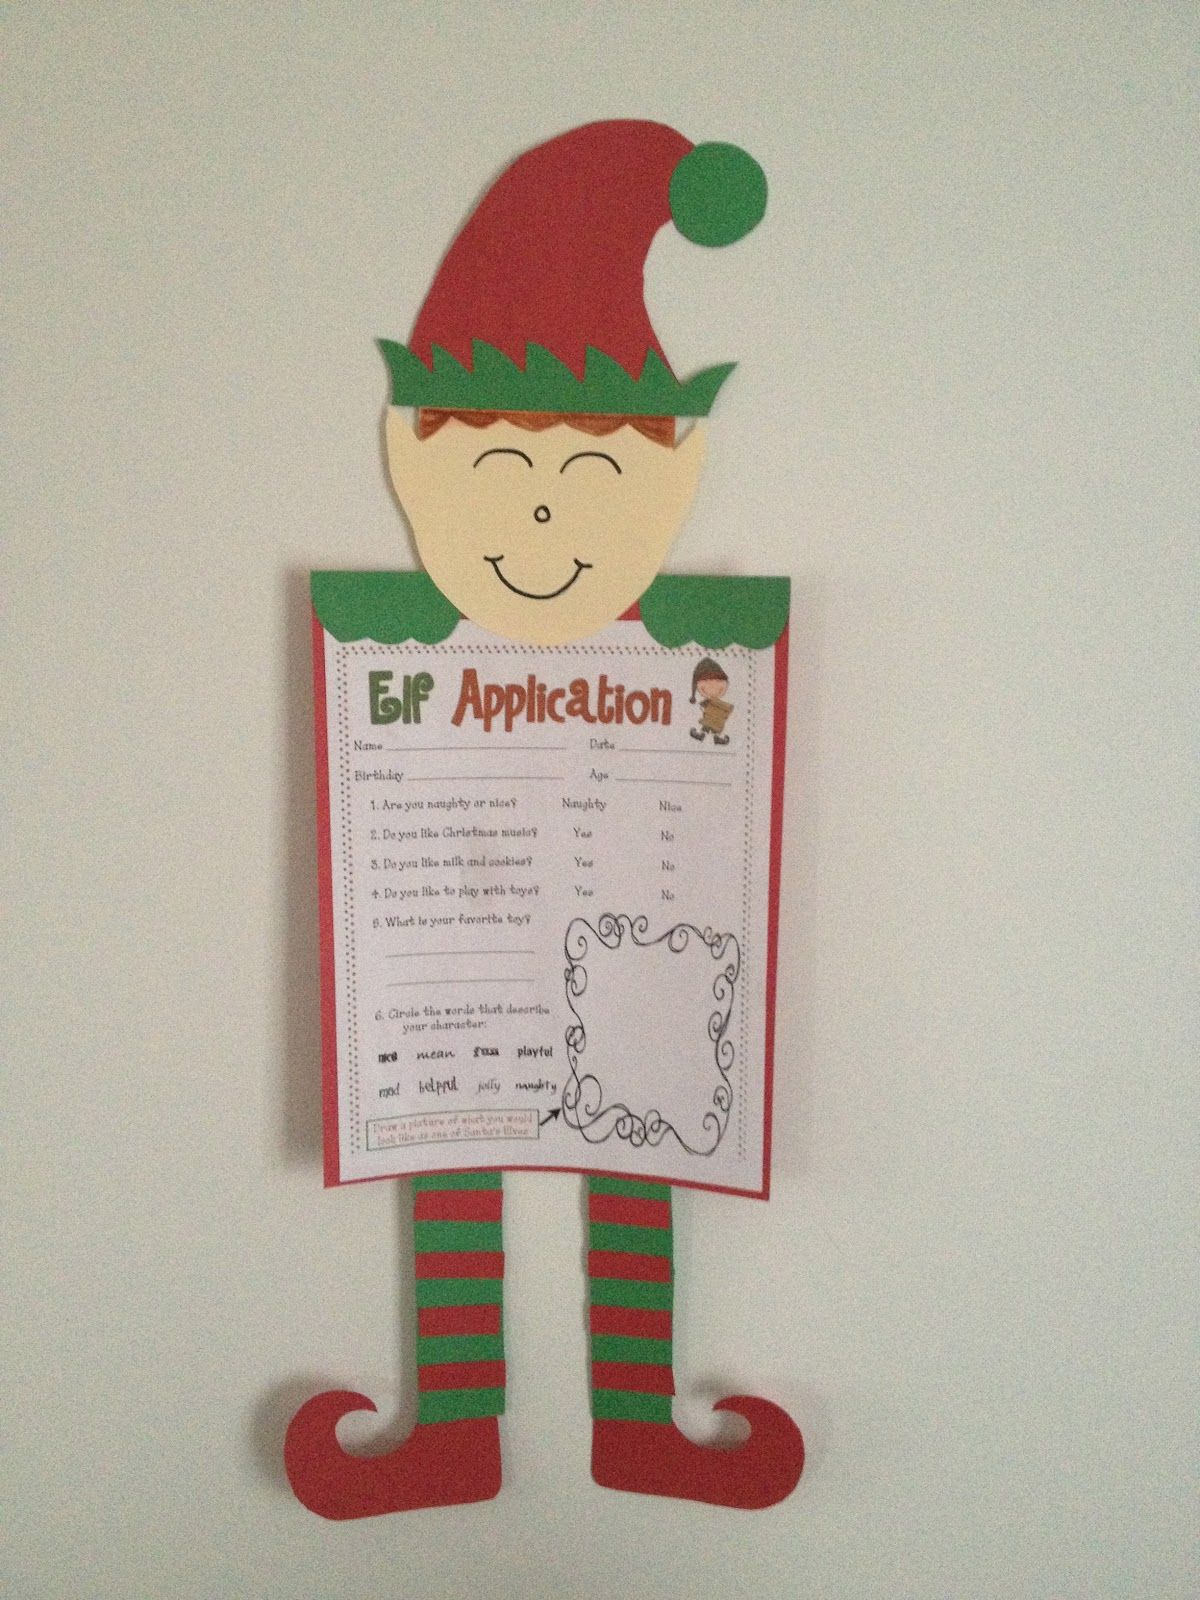 Elf Application